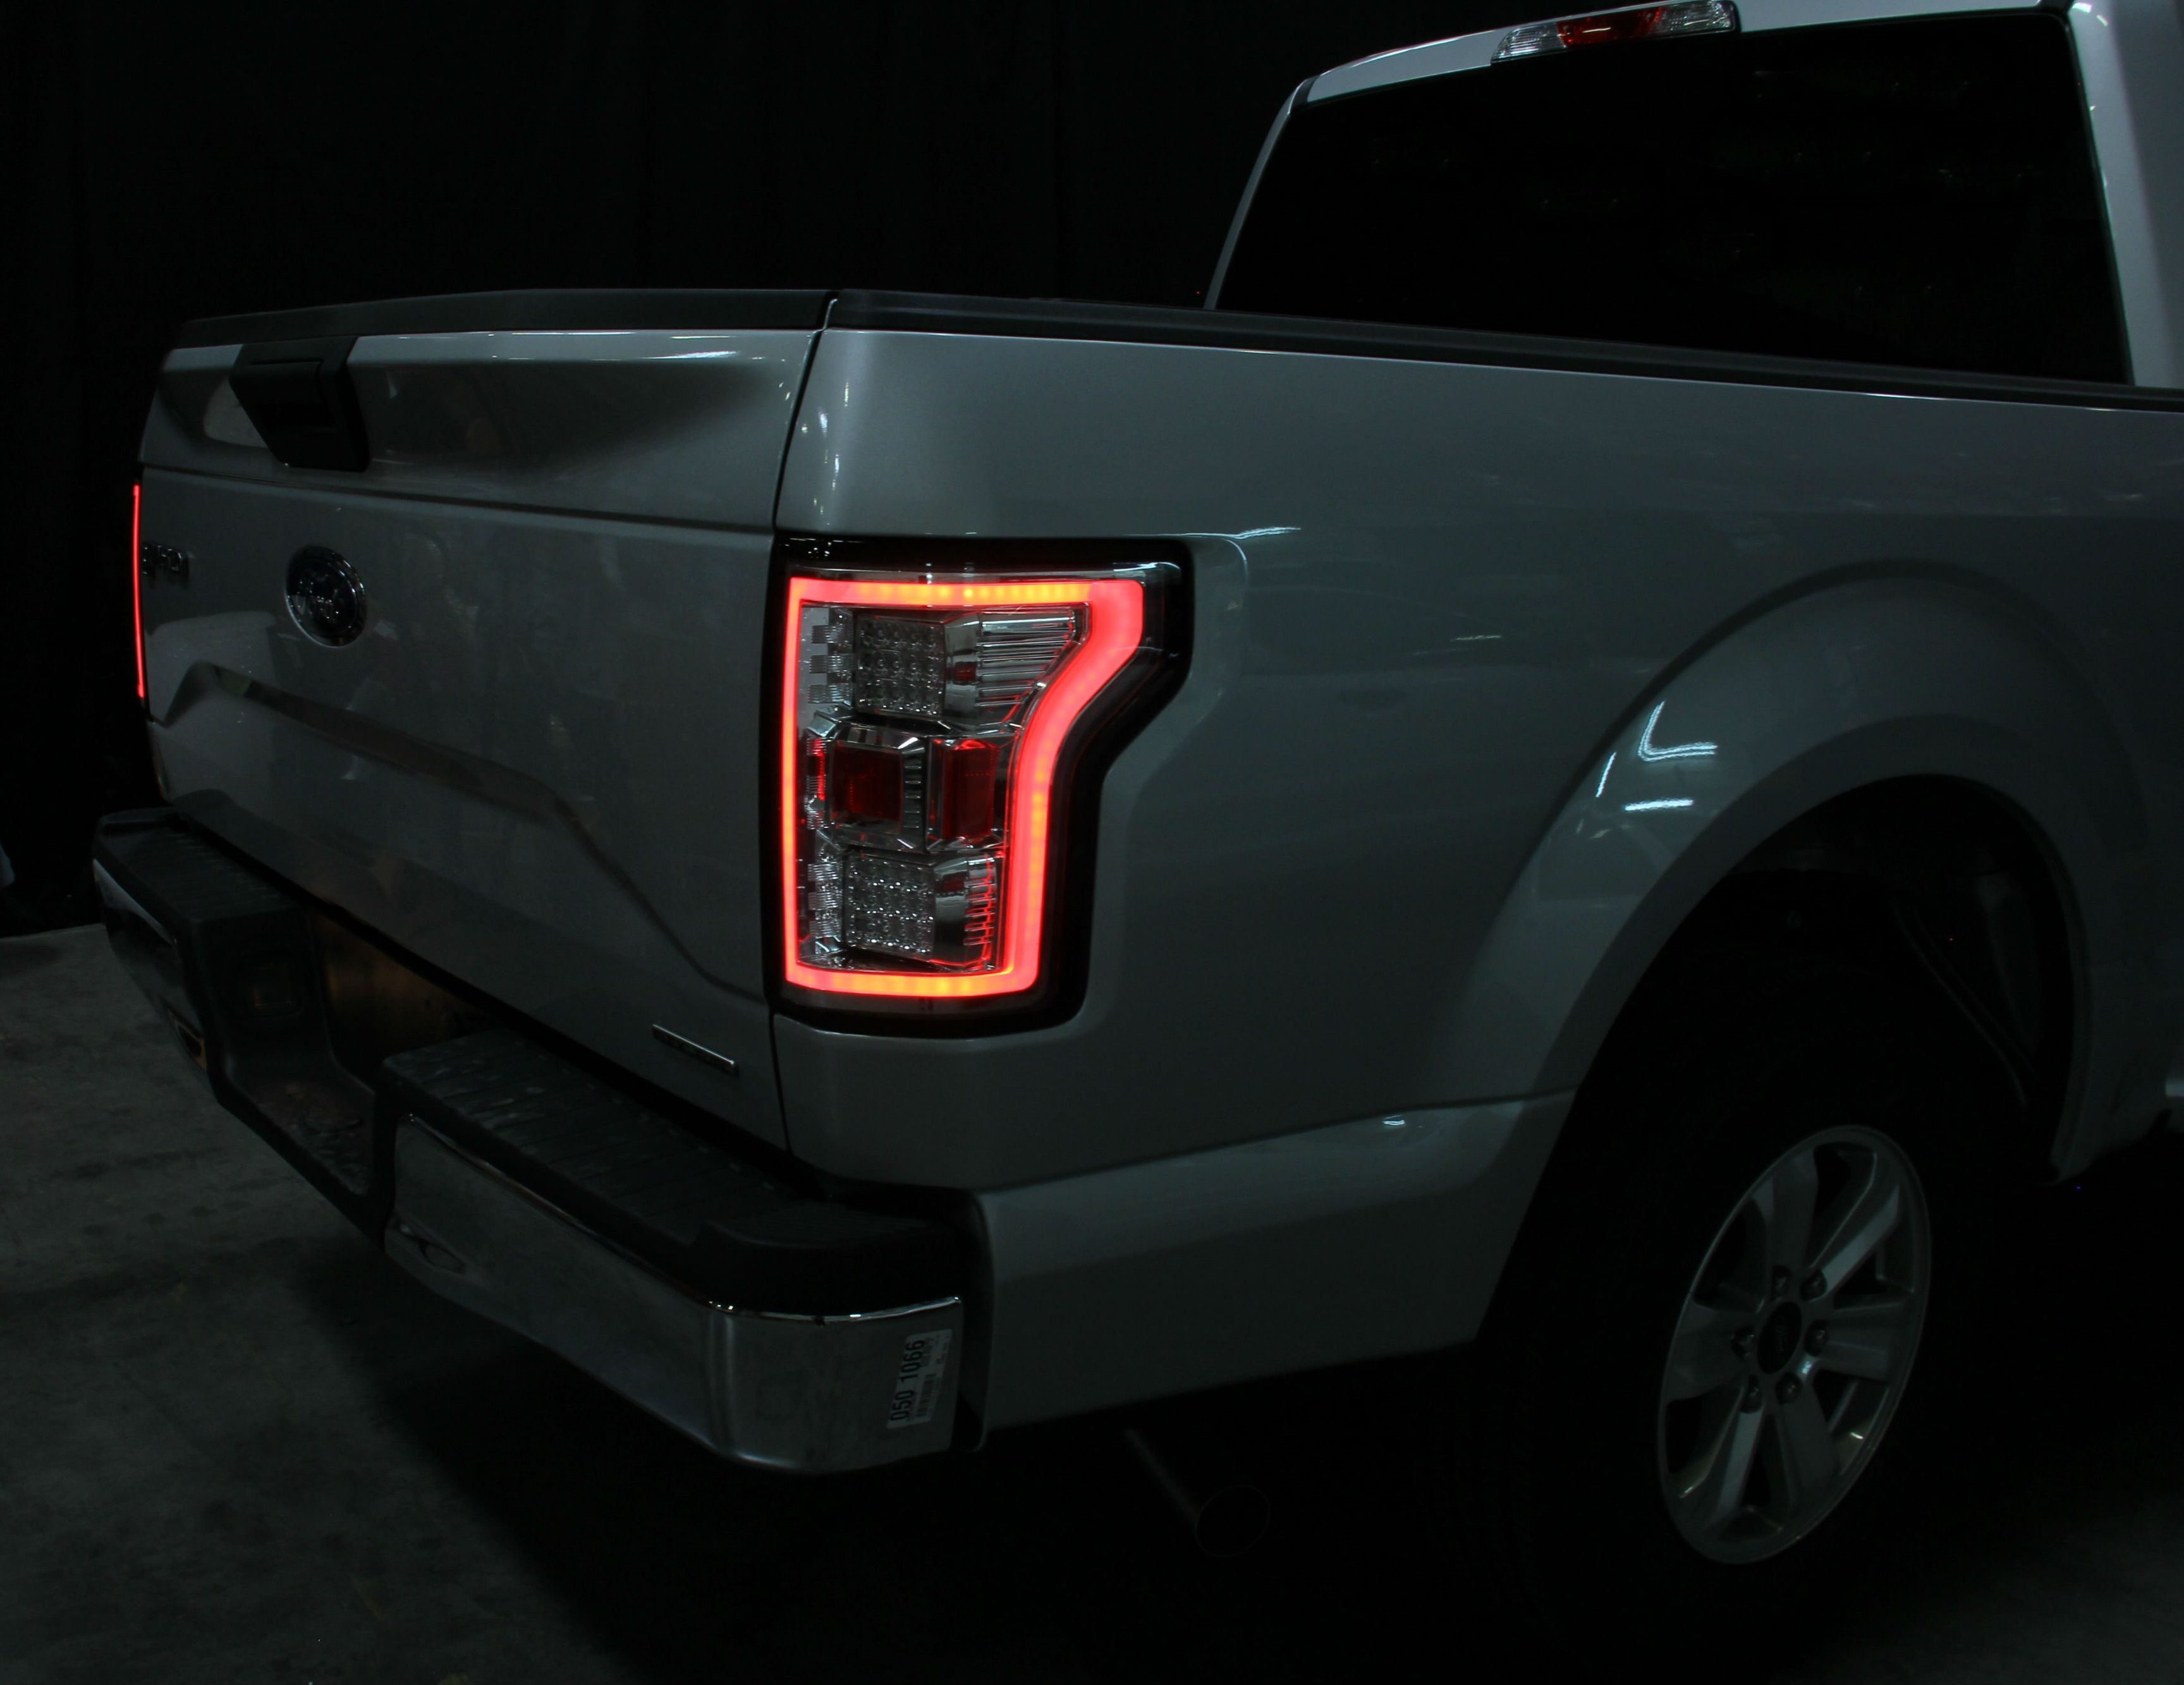 Toyota Tacoma 2015-2018 Service Manual: Illumination for Panel Switch does not Come on with Tail Switch ON